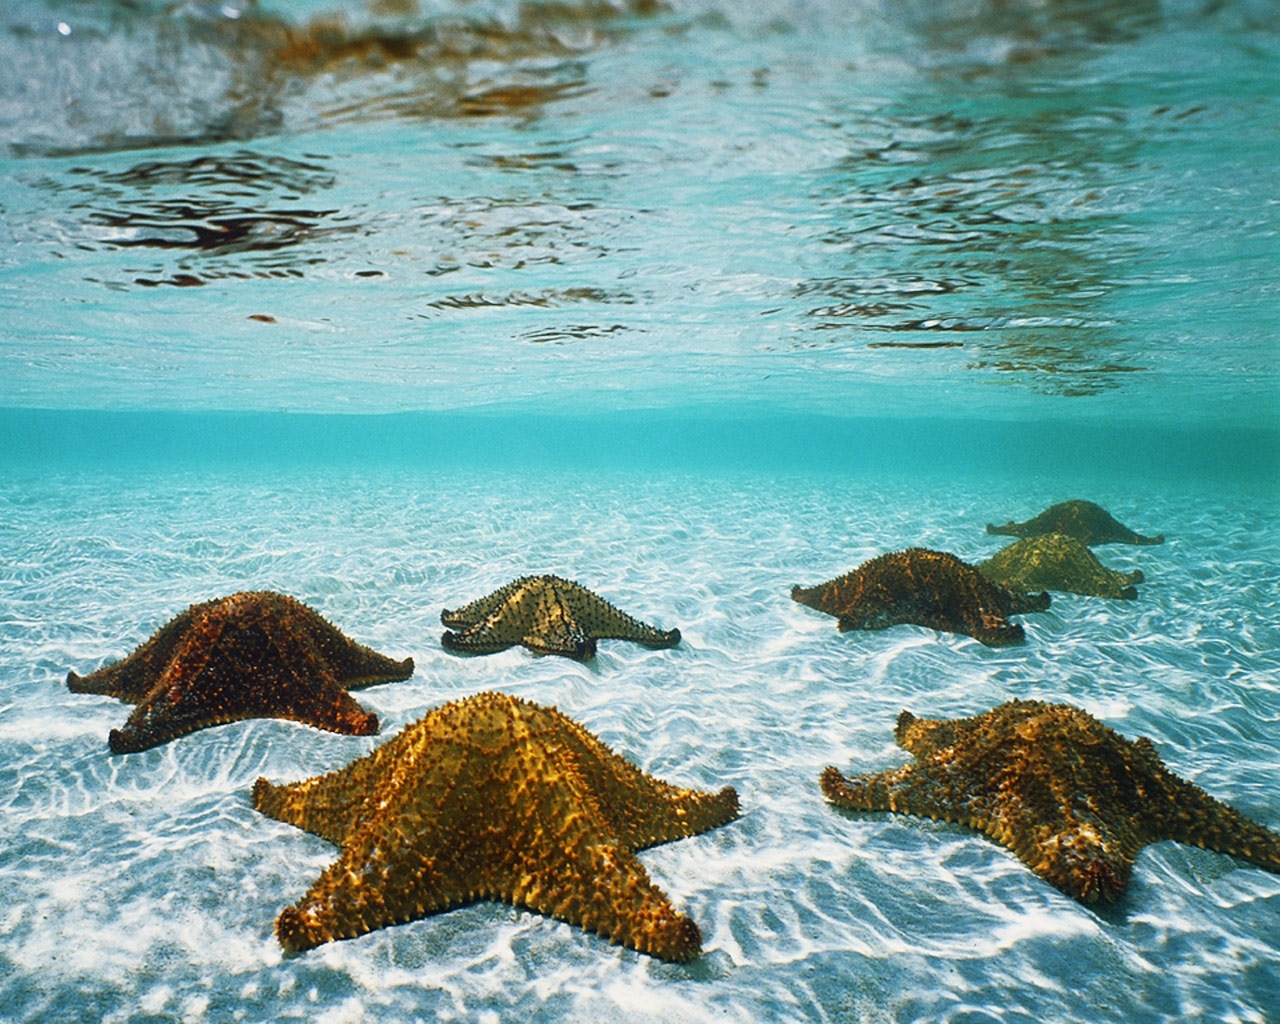 9131 download wallpaper Landscape, Water, Sea, Starfish screensavers and pictures for free